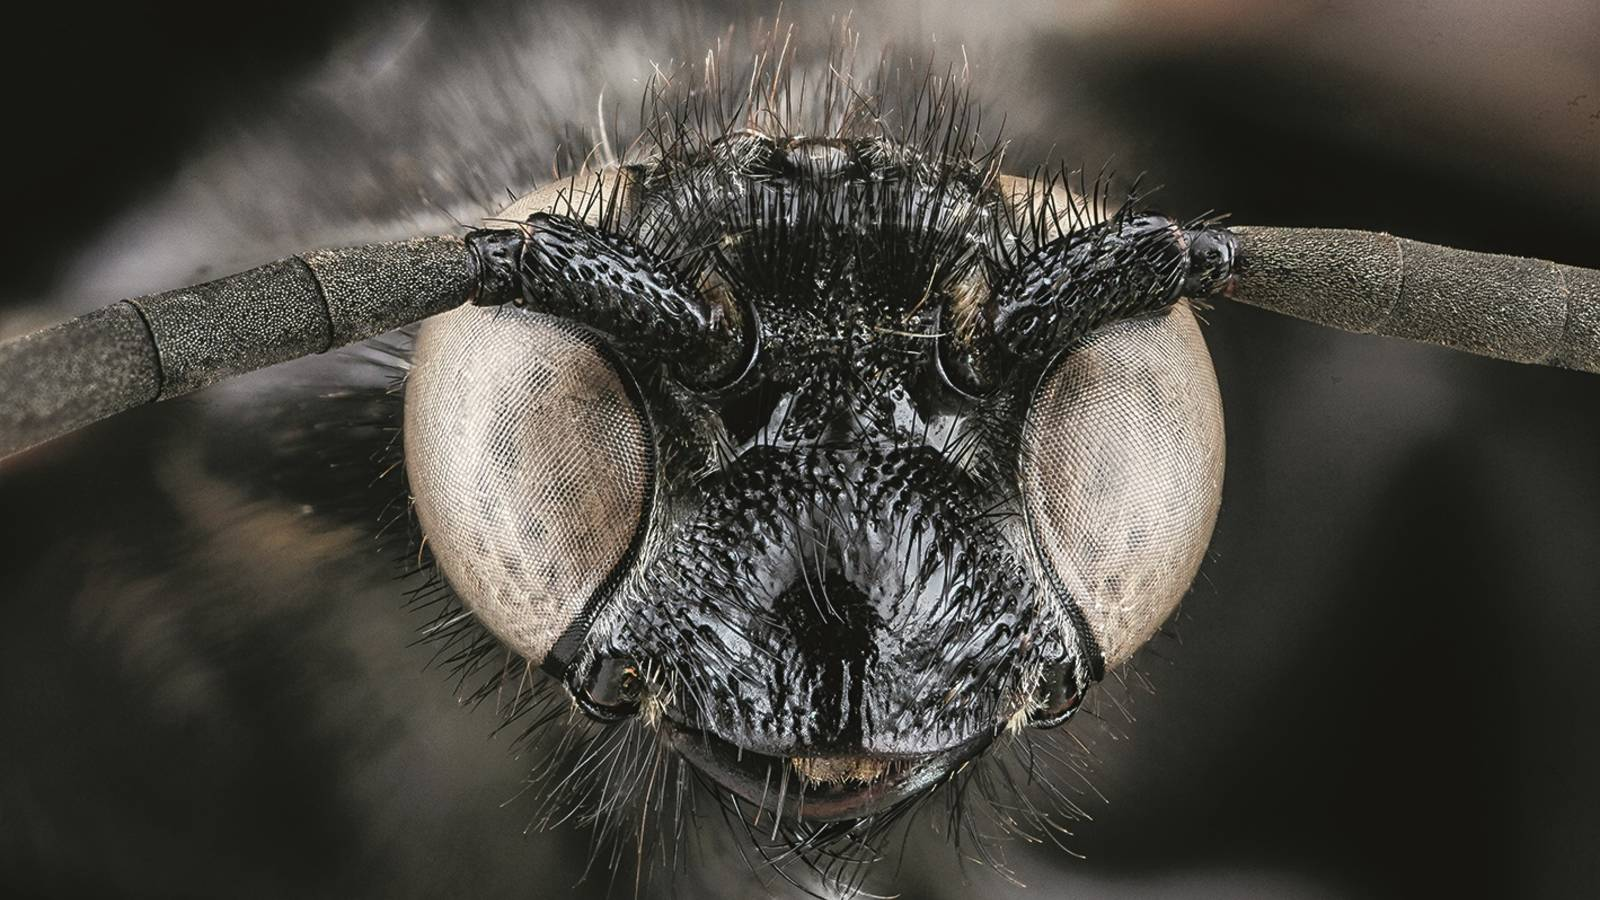 """<h3 style=""""text-align: center; padding: 50px;""""><span class=""""text-Intro-style""""><em>Scolia bicincta</em> (wasp), Cape Cod National Seashore, Massachusetts. © SAM DROEGE/USGS BEE INVENTORY AND MONITORING LAB</span></h3>"""